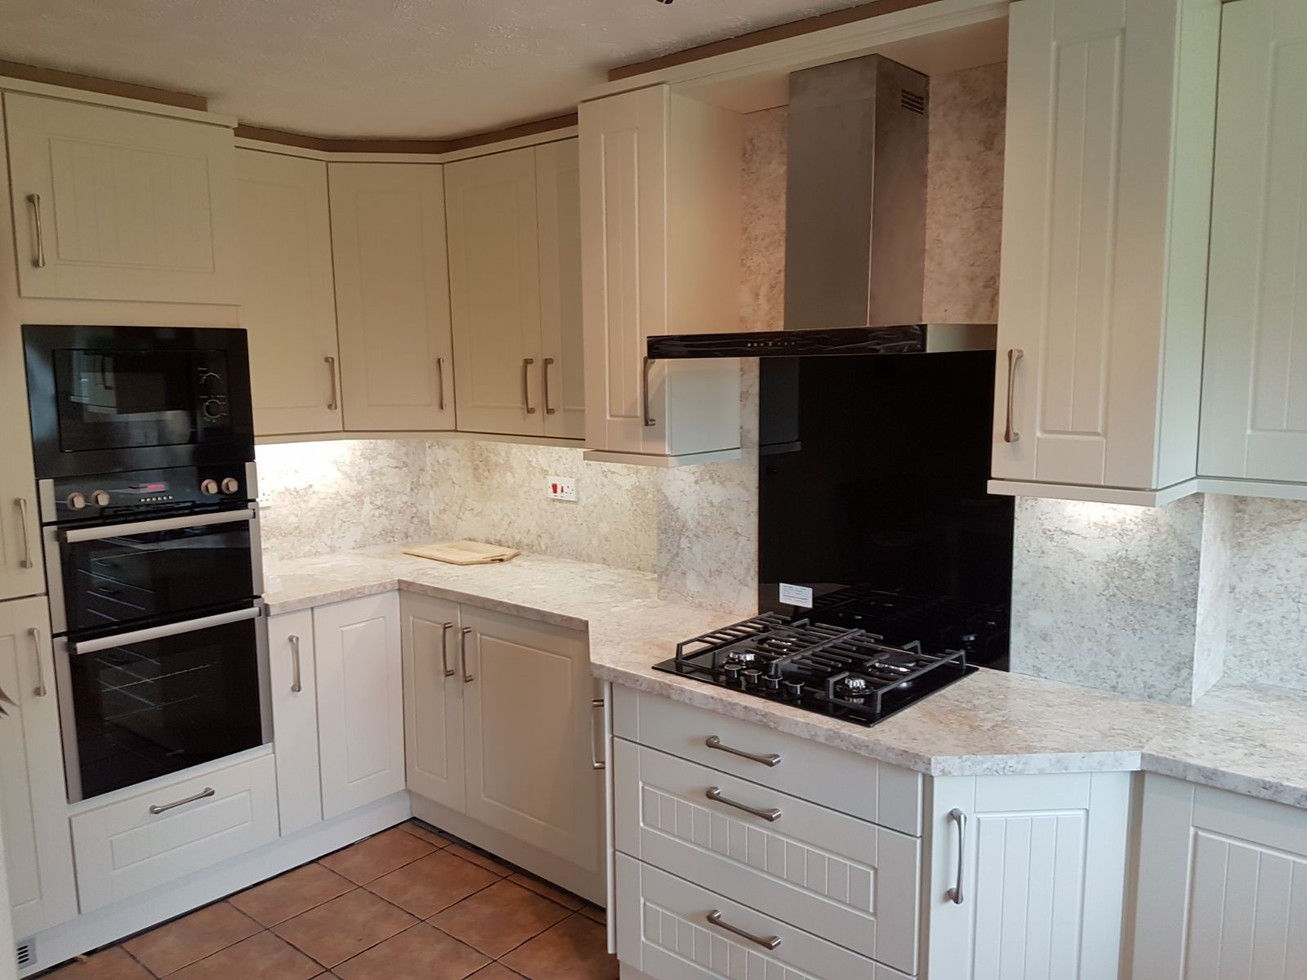 IVORY KITCHEN SUPPLIED & FITTED BY ROYALE CUISINES